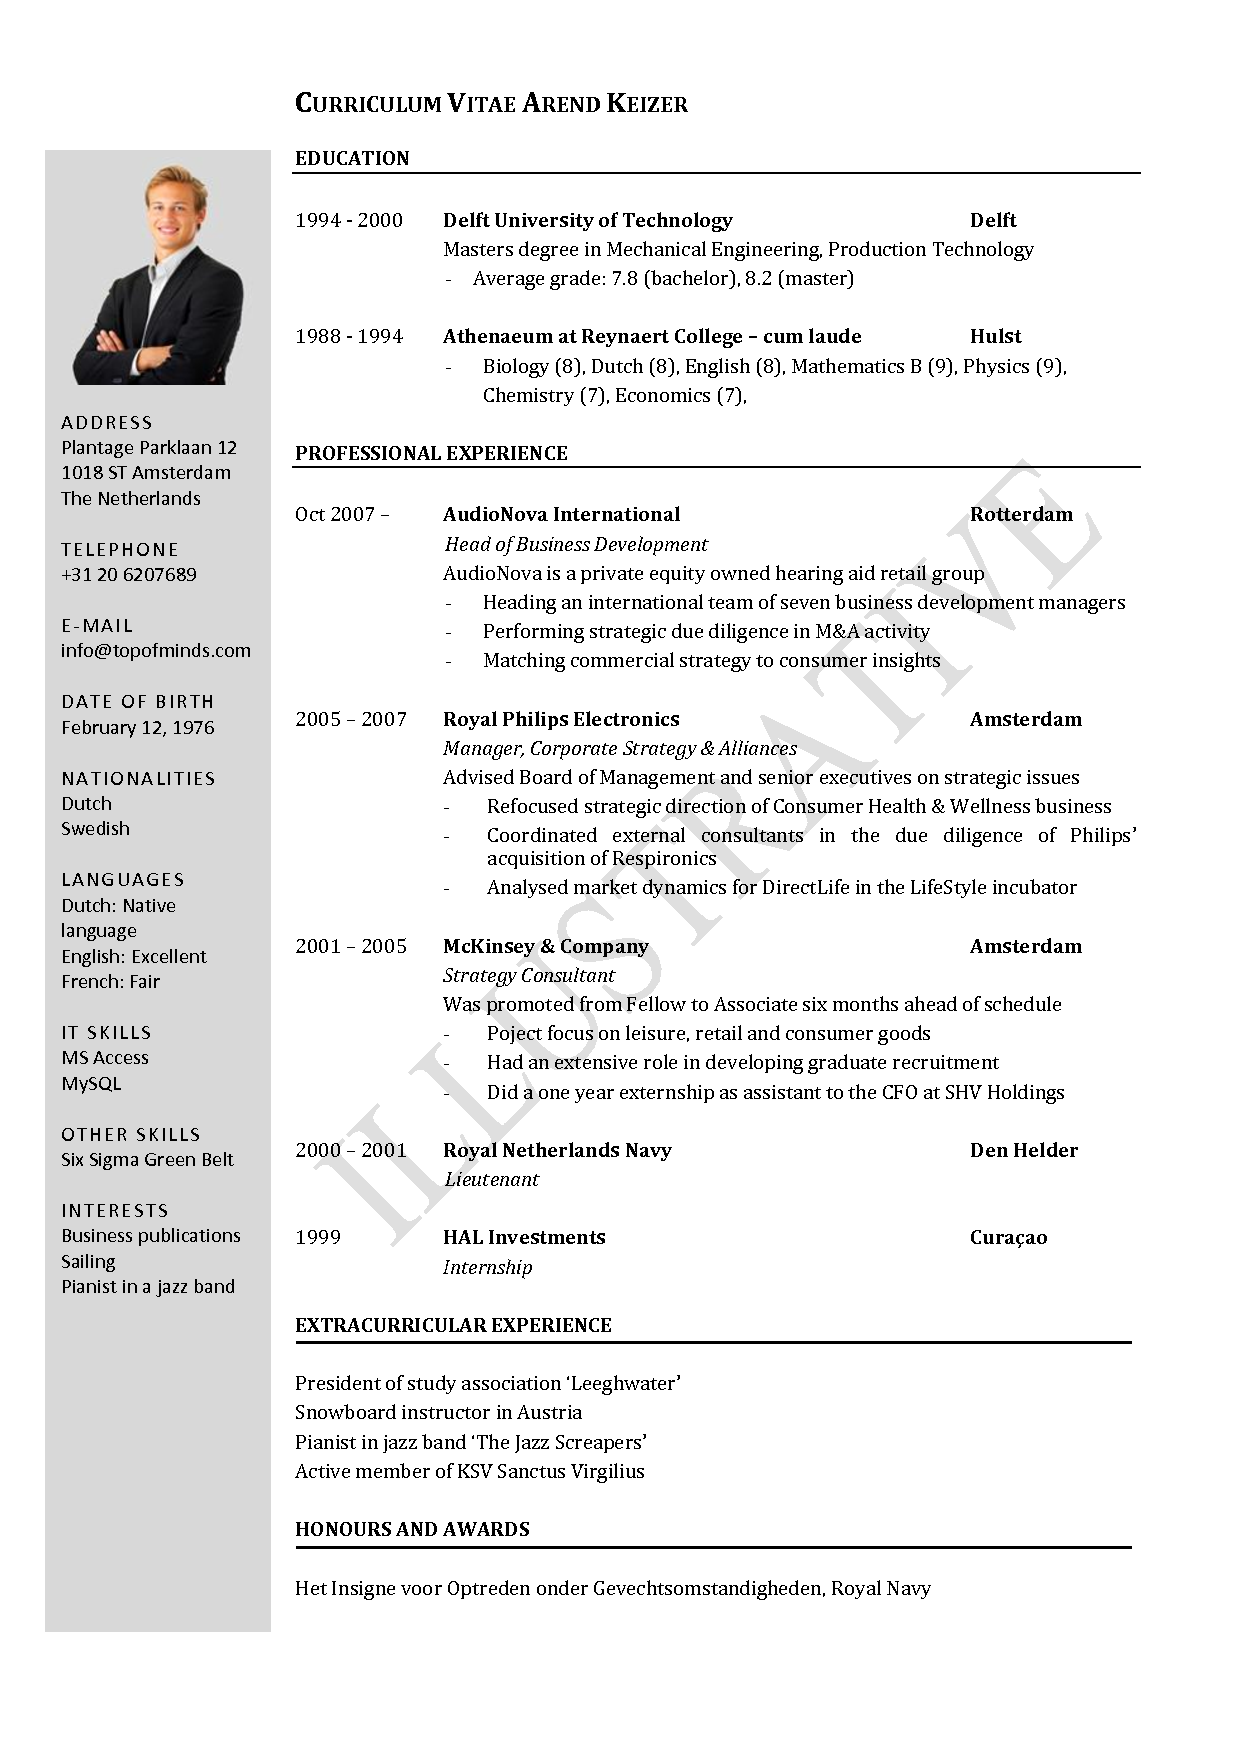 cv template university student - Google Search | cv template ...